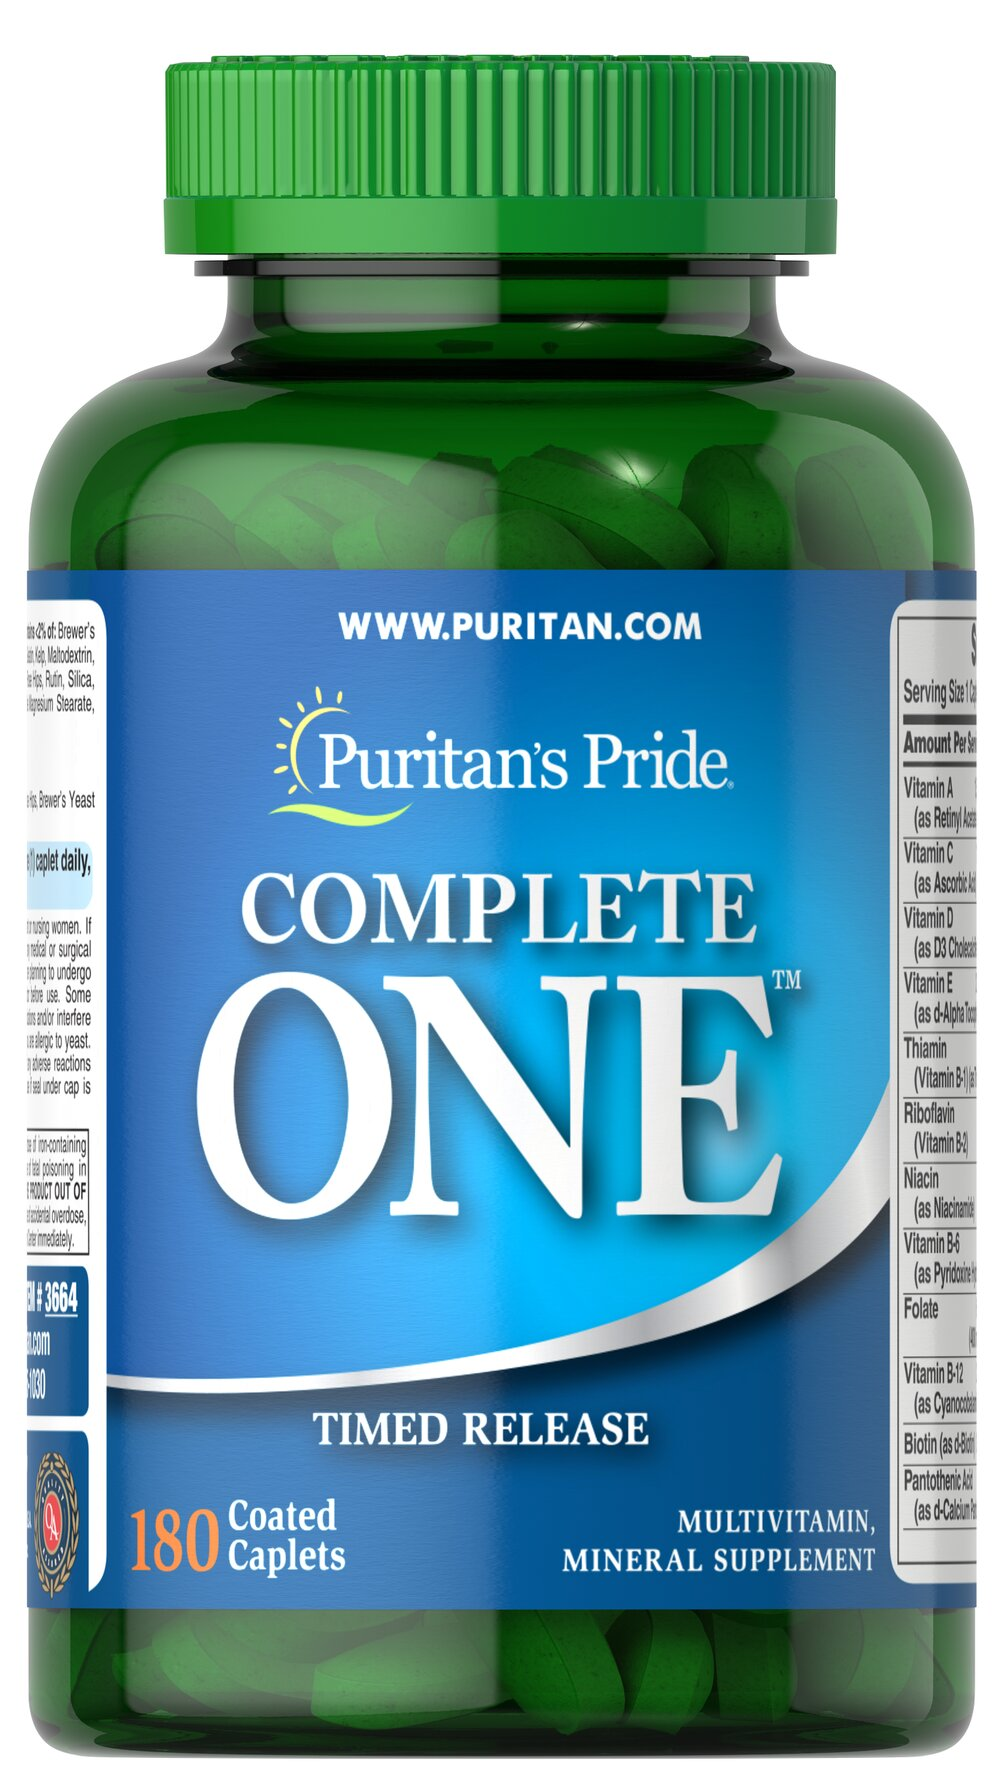 Puritan's Pride One™ Multivitamins Timed Release <p>Special multivitamins formula with beta-carotene. Each easy-to-swallow tablet provides: 28 essential nutrients, long acting B-Complex and C Vitamins, plus 13 Essential Minerals including Chromium, Selenium and Zinc.</p> 180 Caplets  $37.99